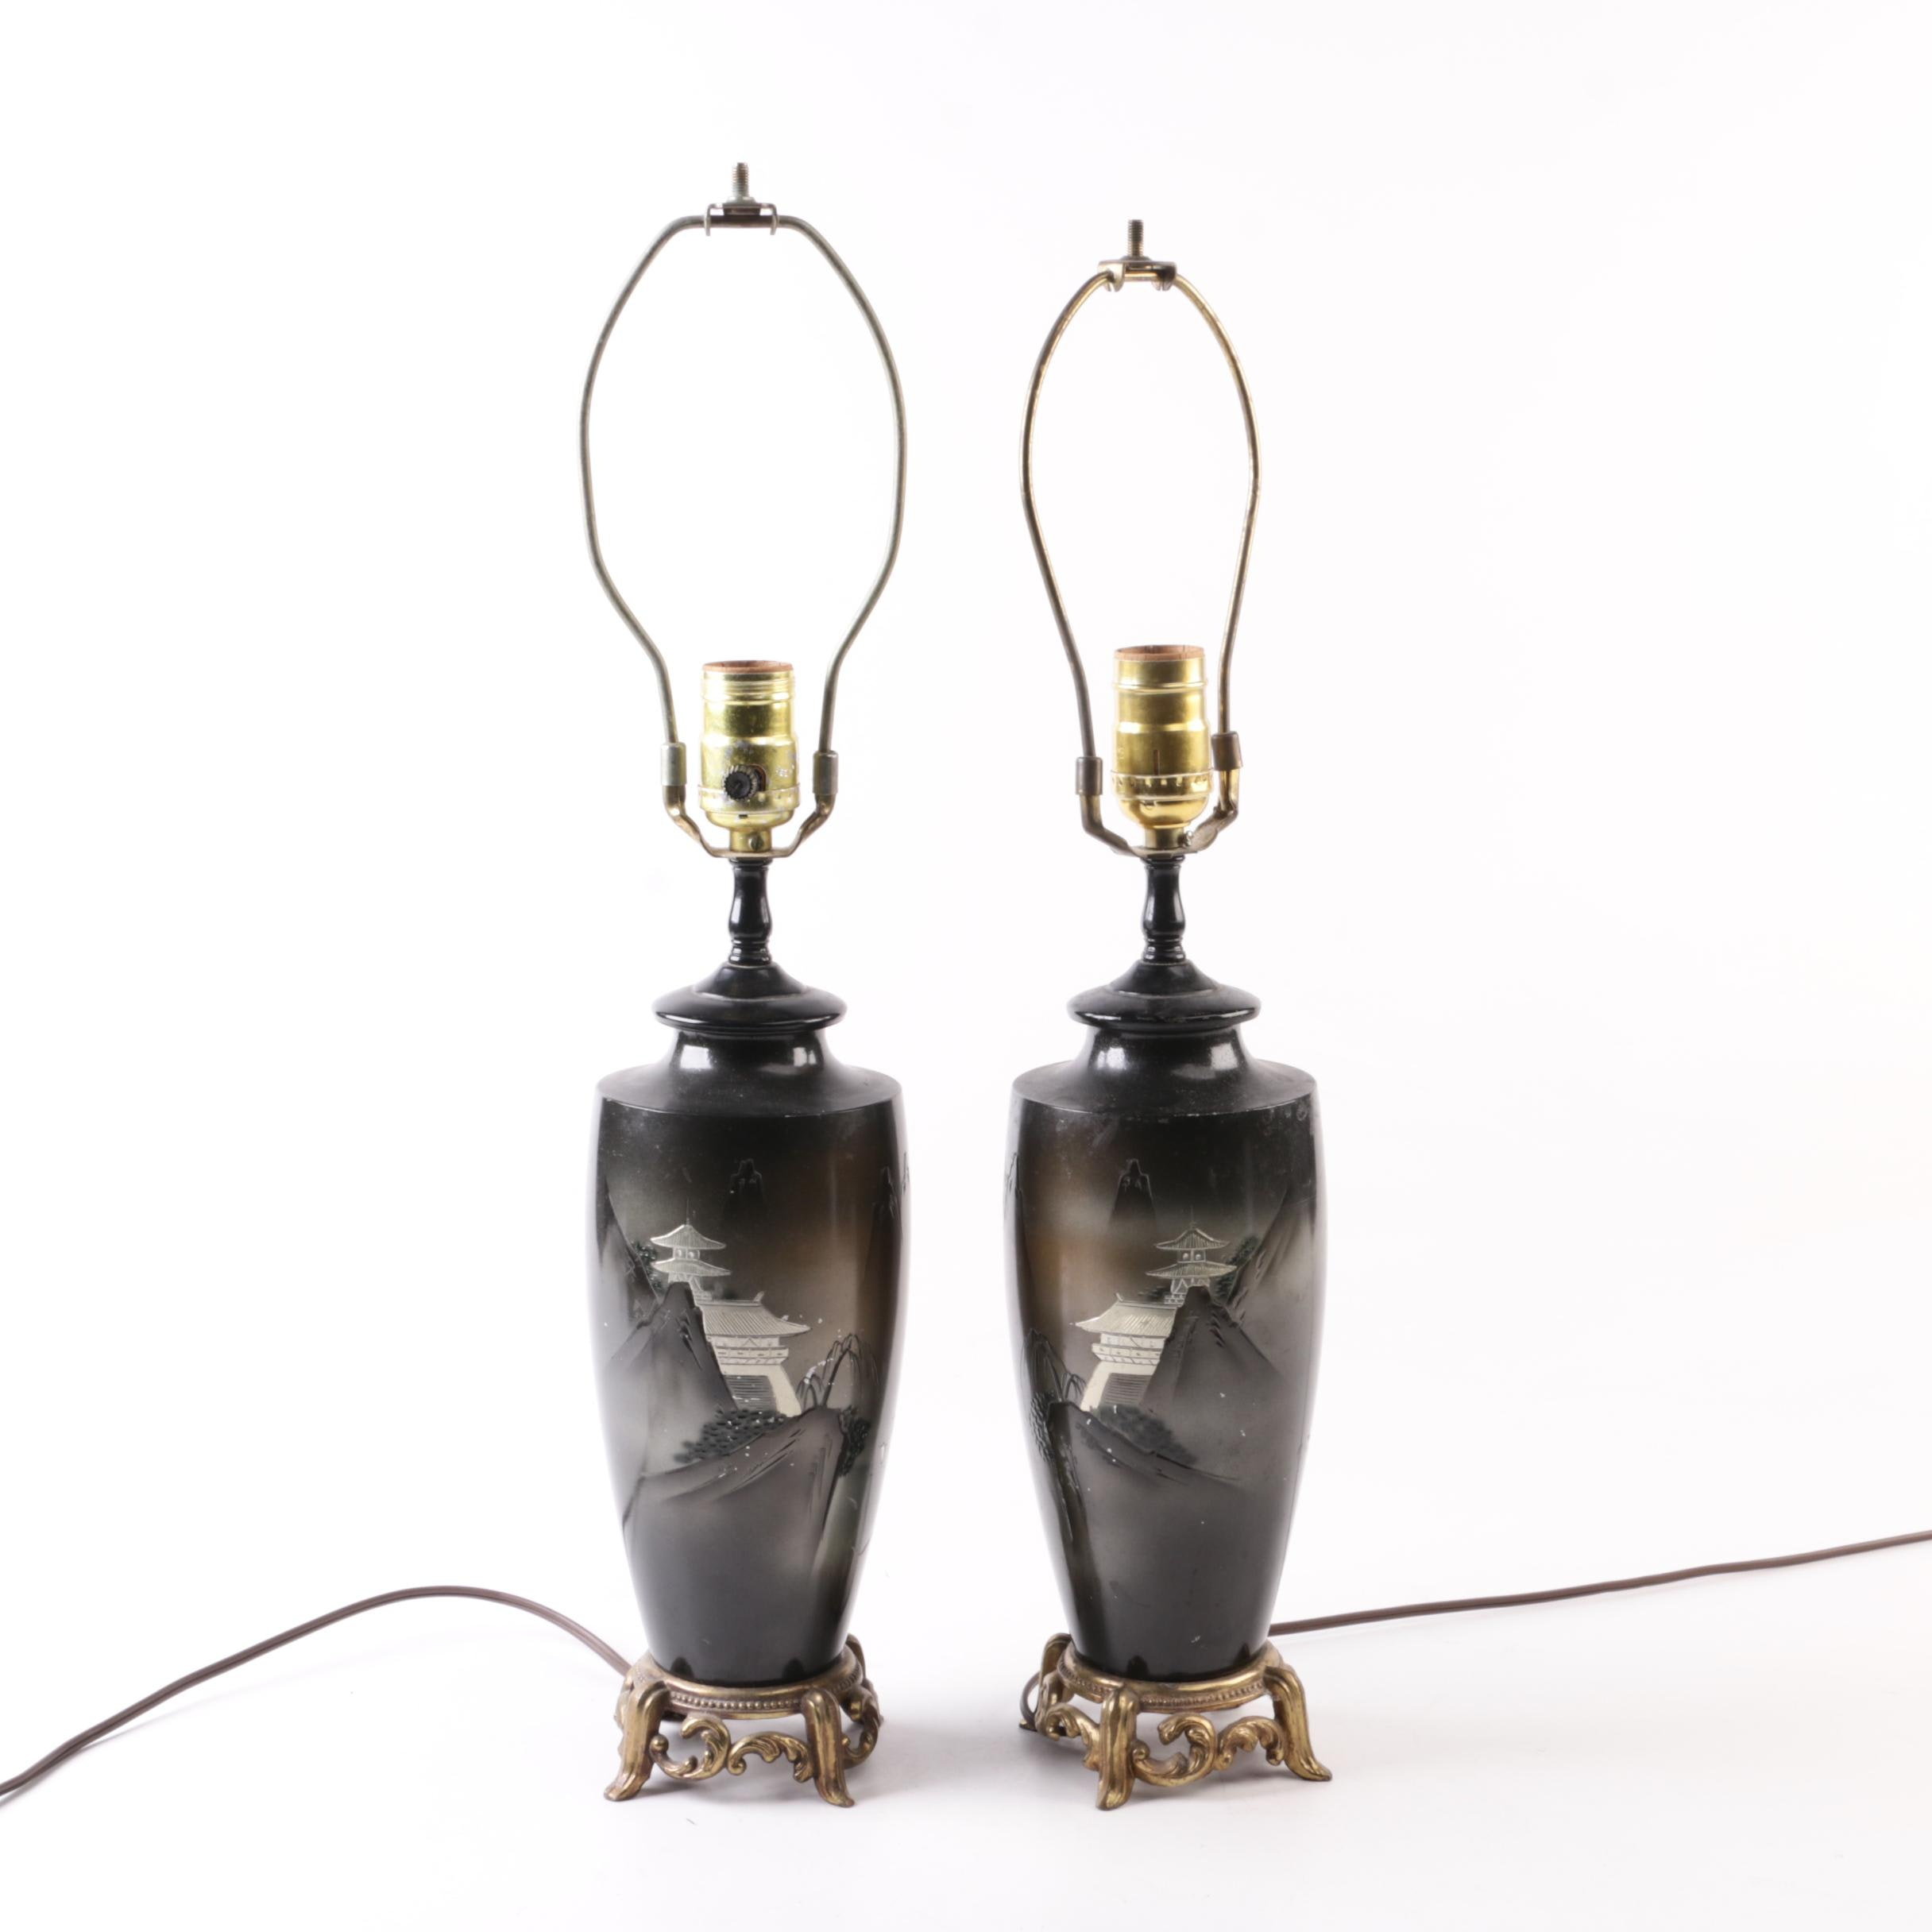 Japanese Brass and Metal Table Lamps